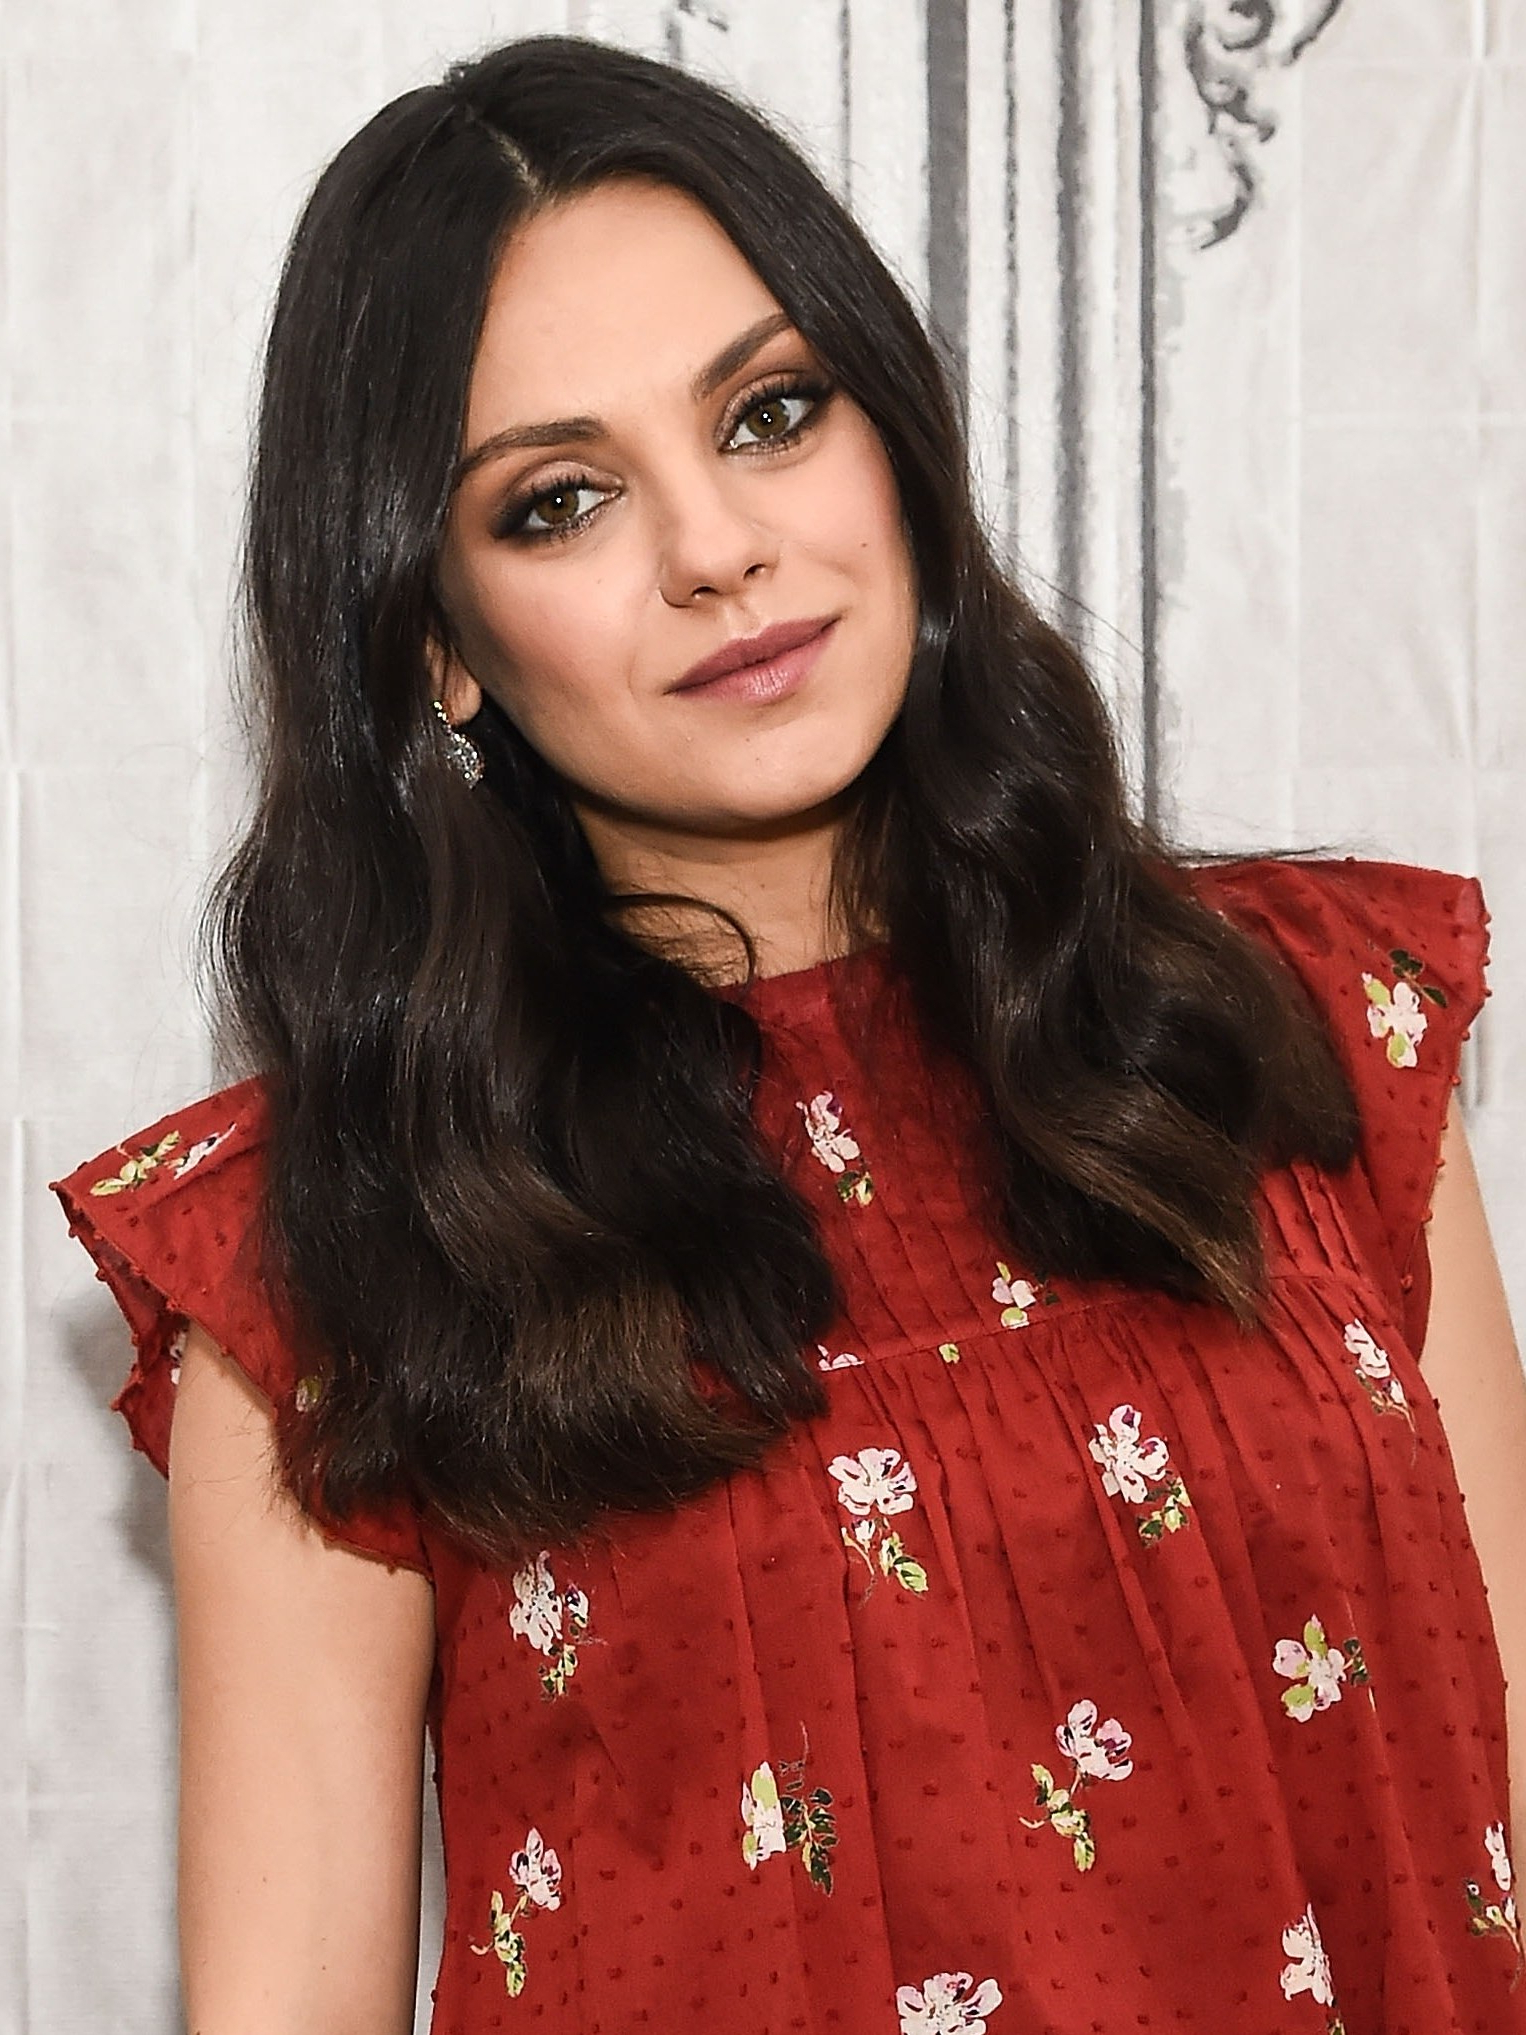 Mila Kunis Got A Chic, Angled Bob Haircut: See Photos – Allure With Mila Kunis Short Hairstyles (View 23 of 25)